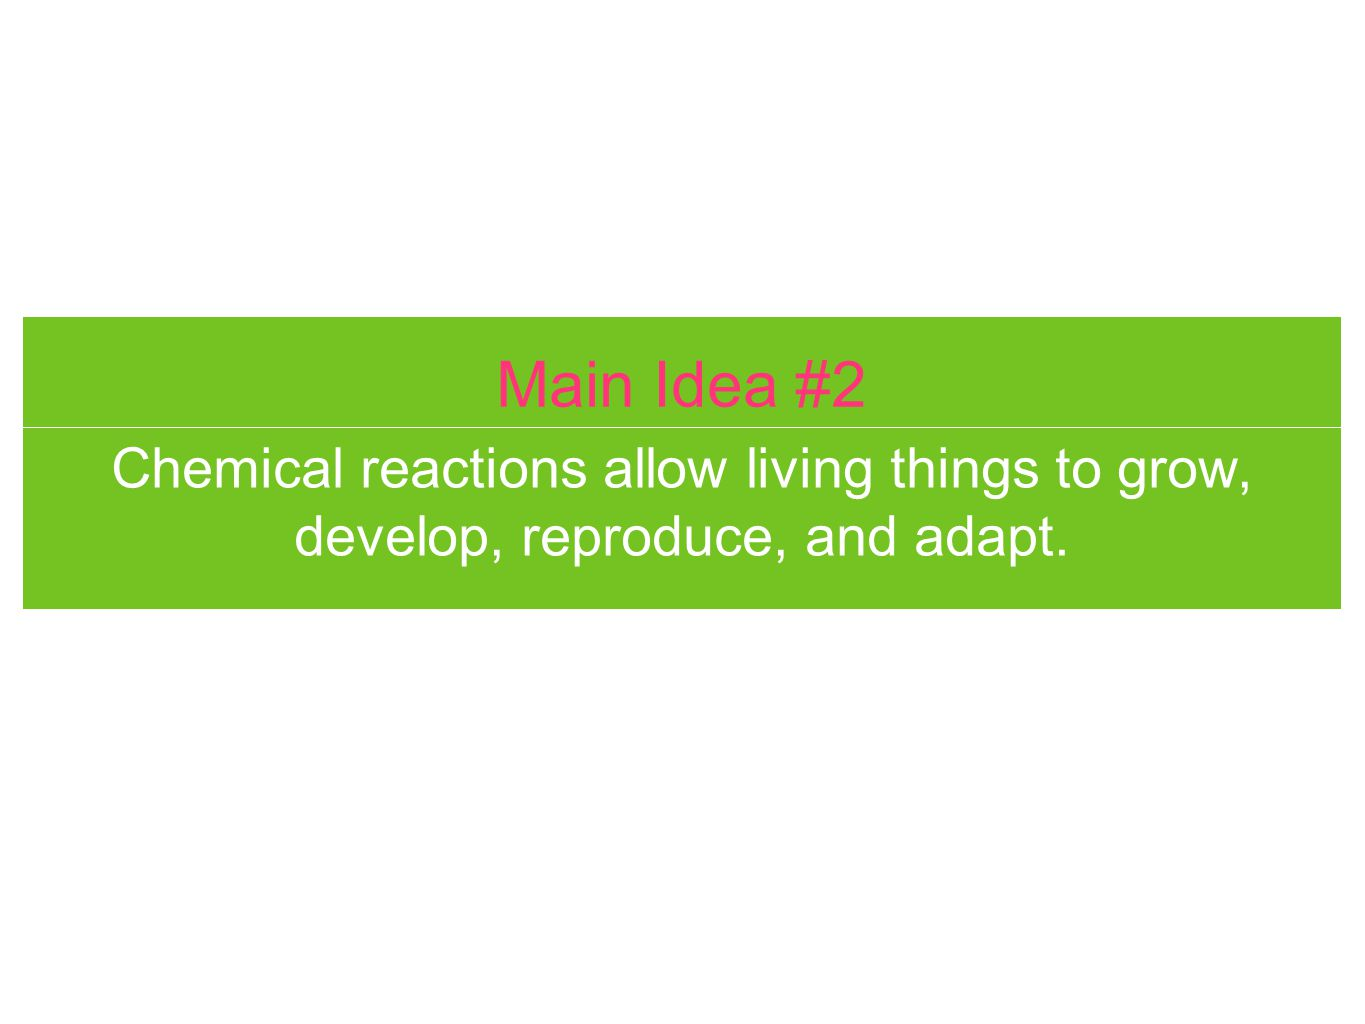 Main Idea #2 Chemical reactions allow living things to grow, develop, reproduce, and adapt.